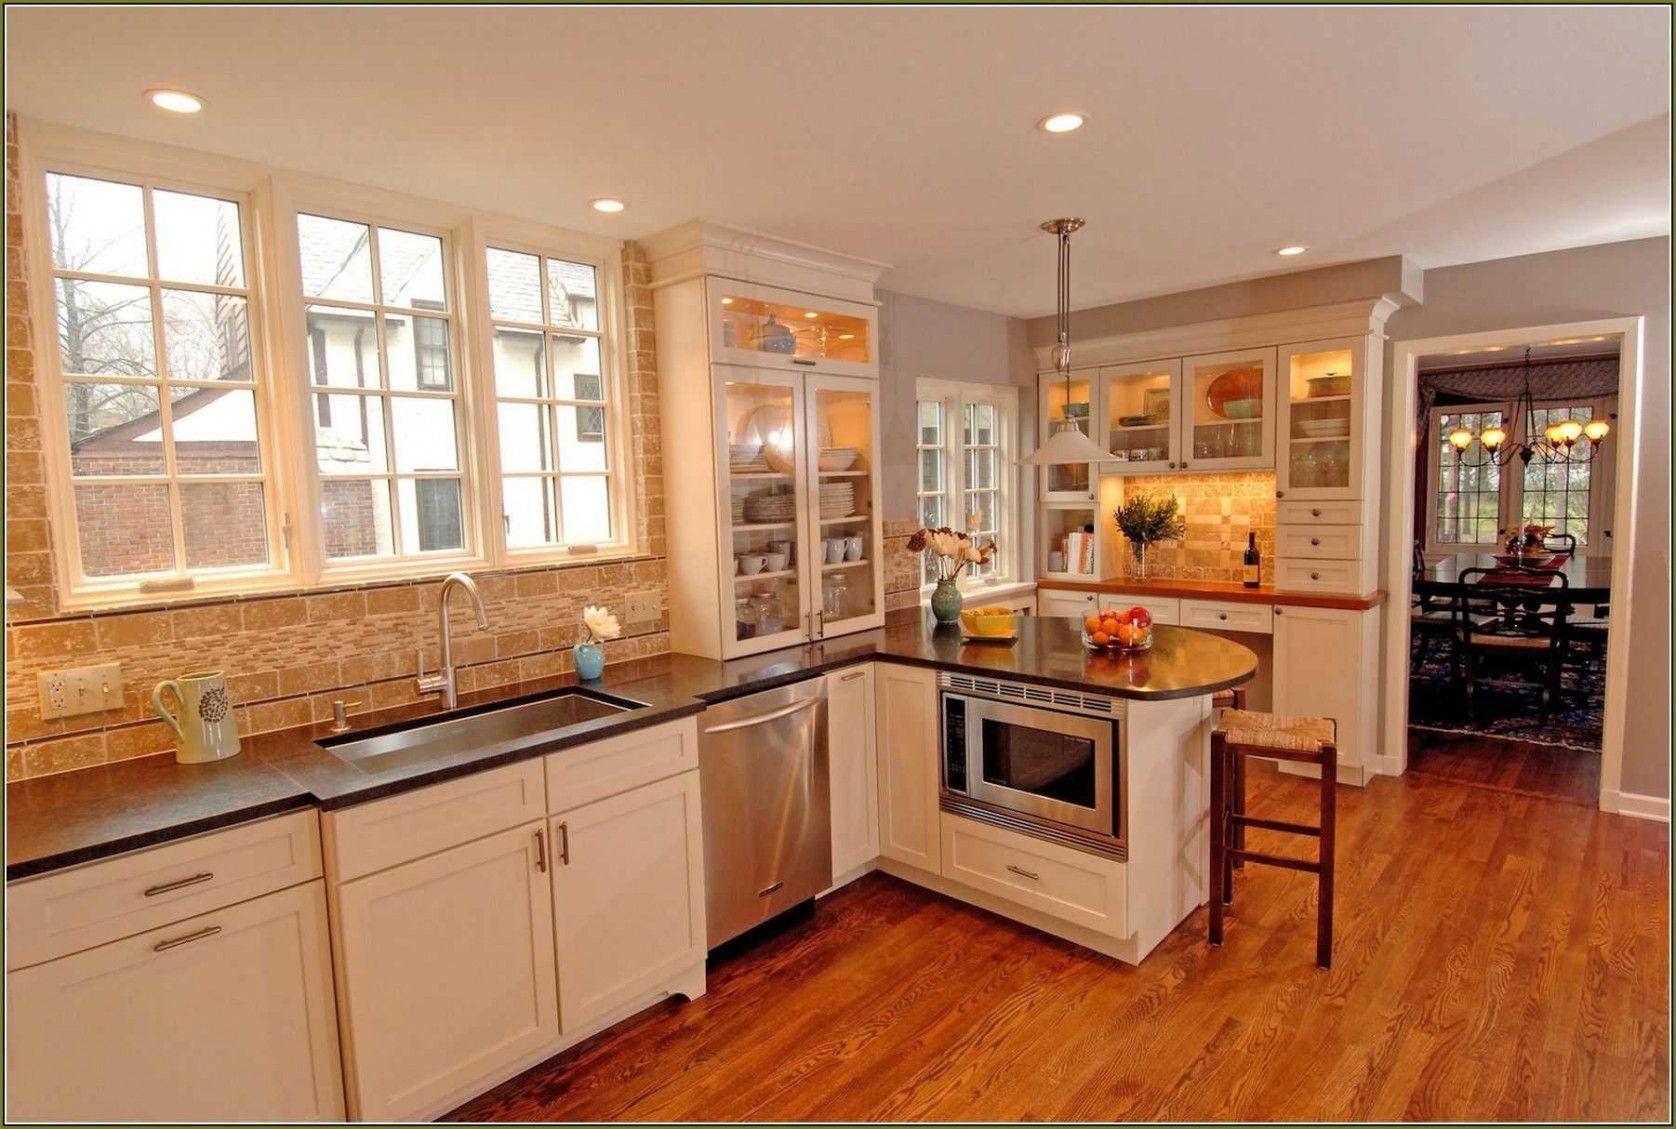 2018 Kitchen Color Ideas with Maple Cabinets - Kitchen ... on Countertop Colors For Maple Cabinets  id=68508